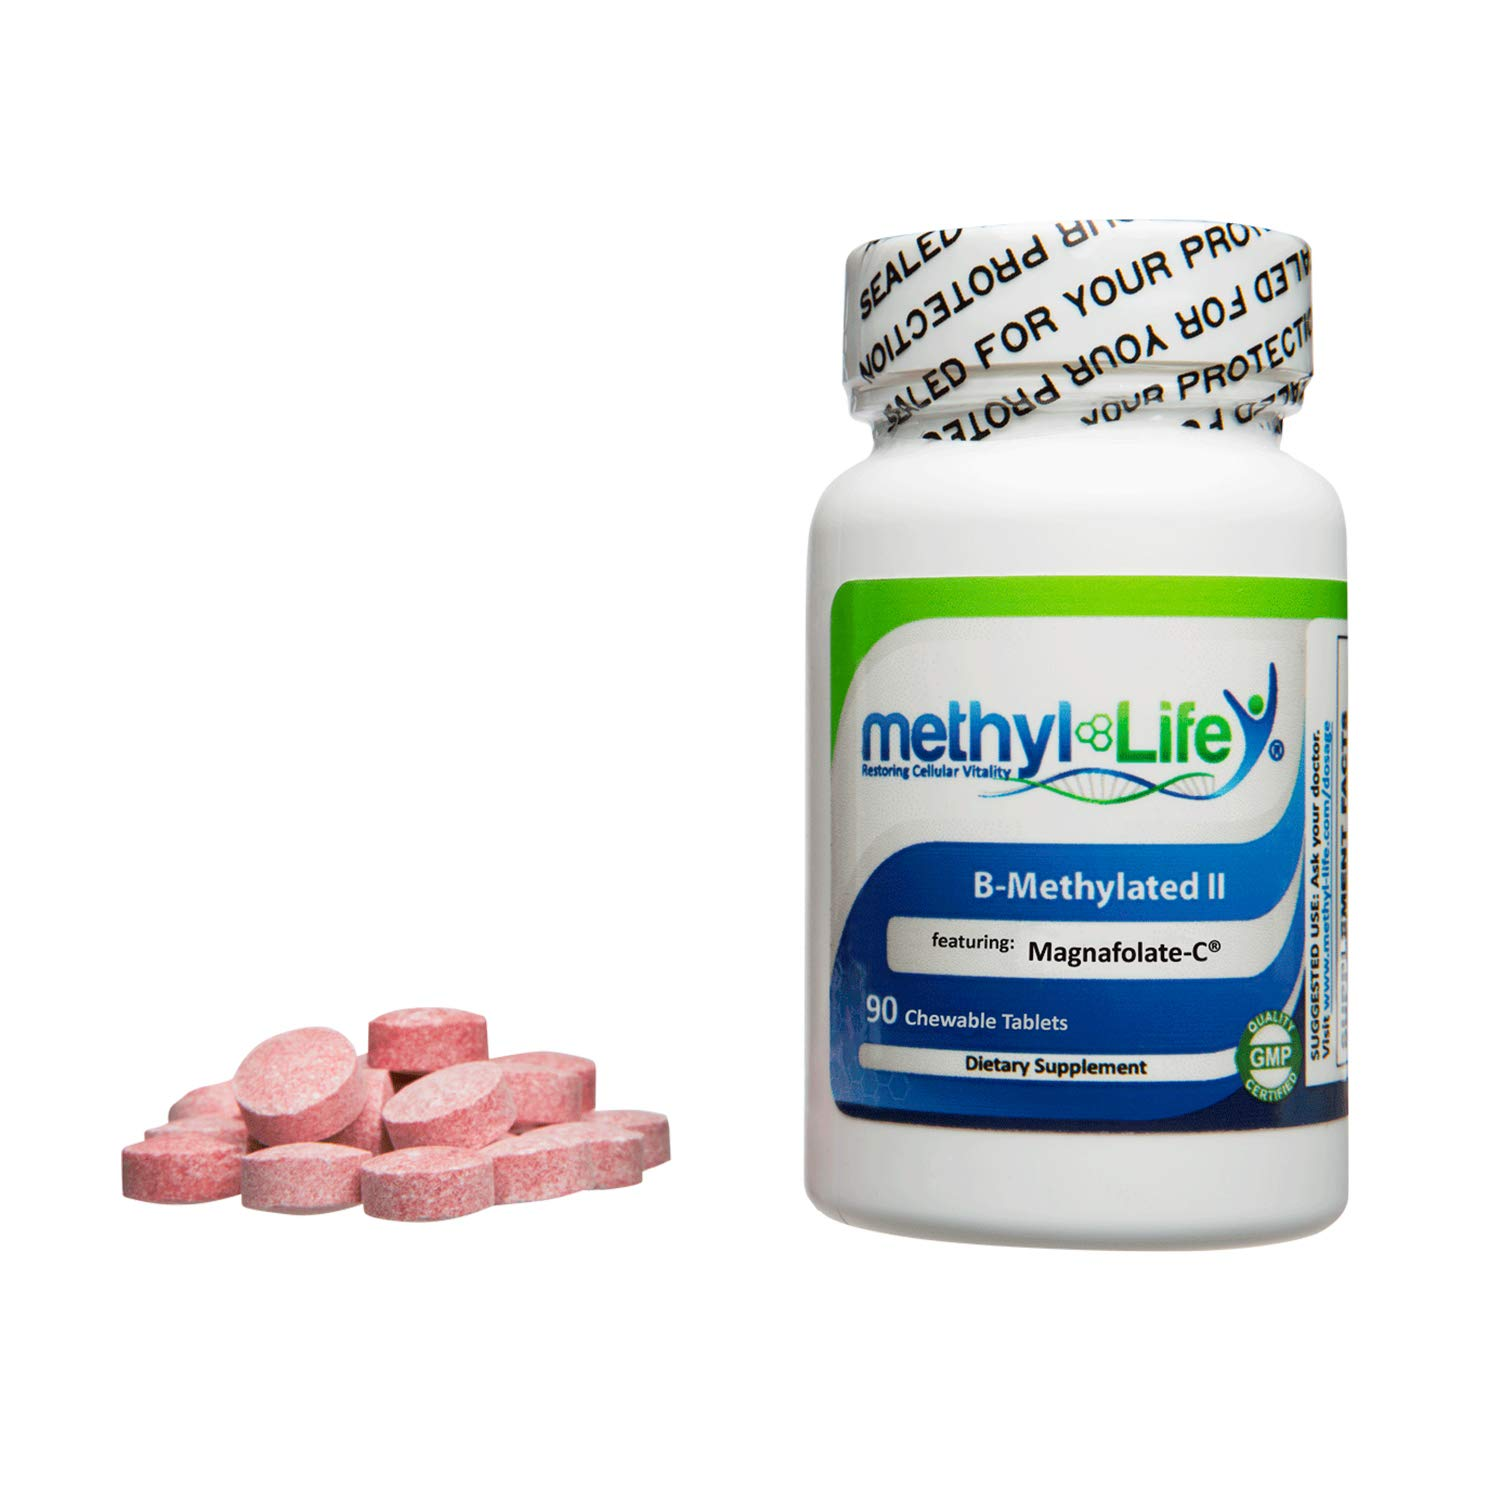 Amazon.com: b-methylated II – 3 mg de methylfolate o l-5 ...